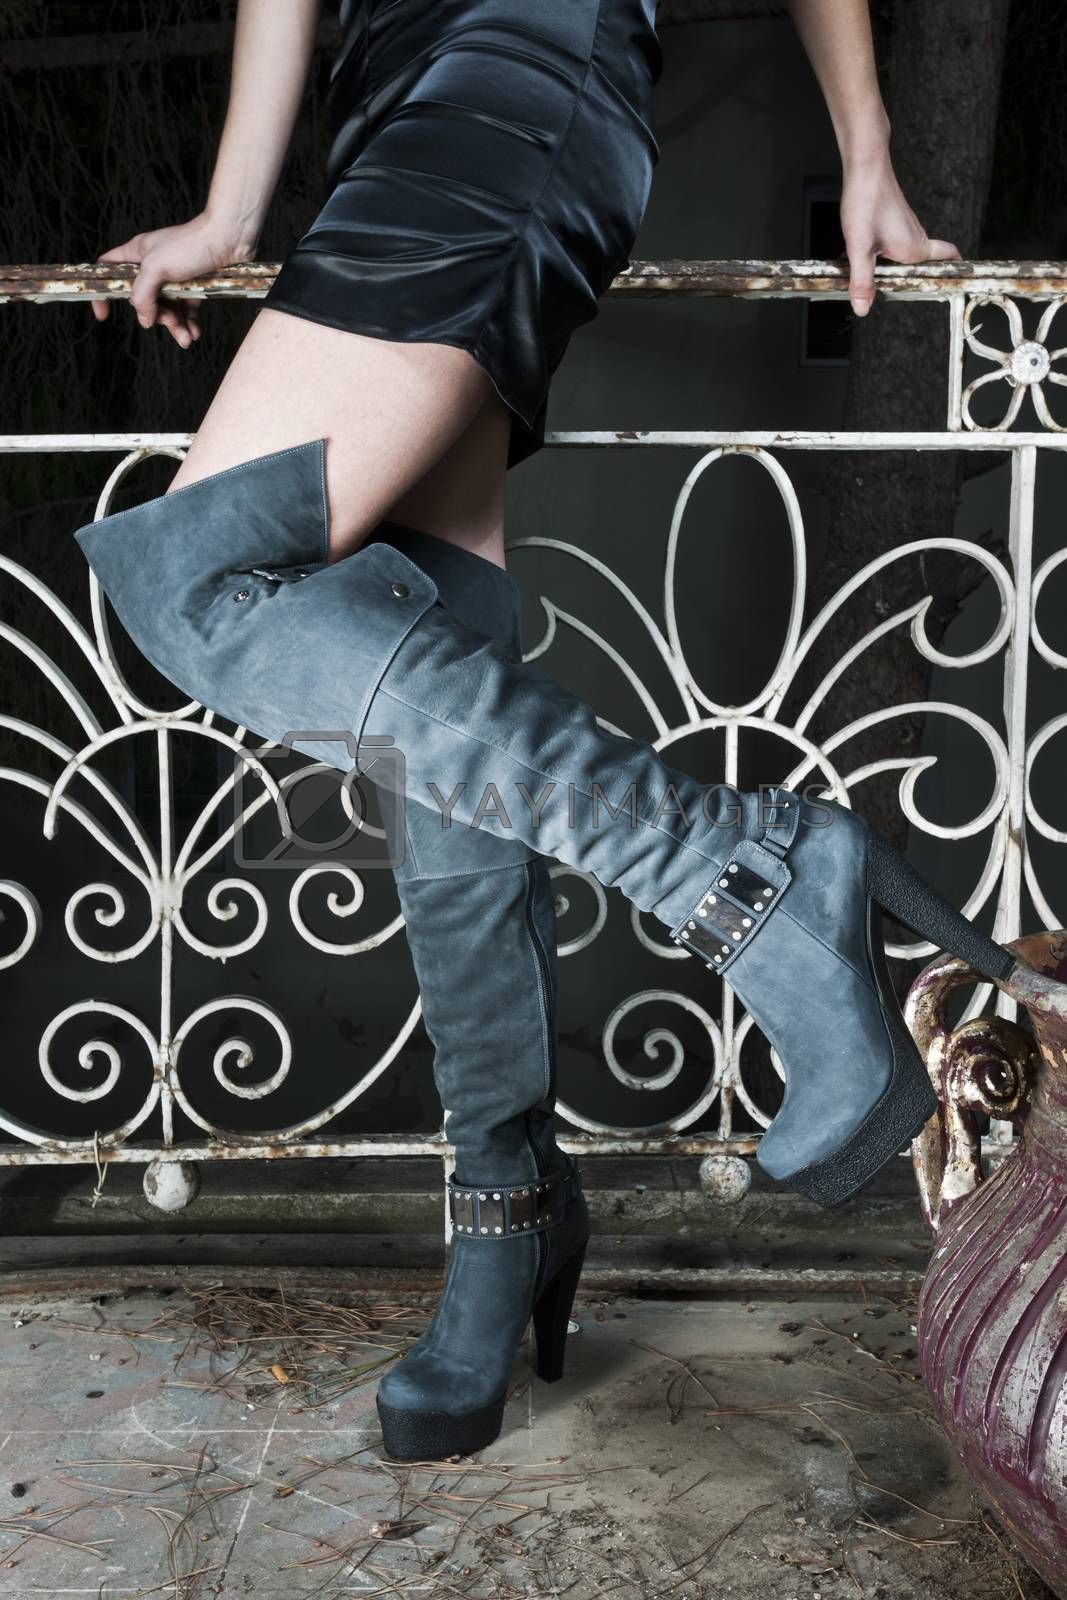 Royalty free image of women's boots by emirkoo